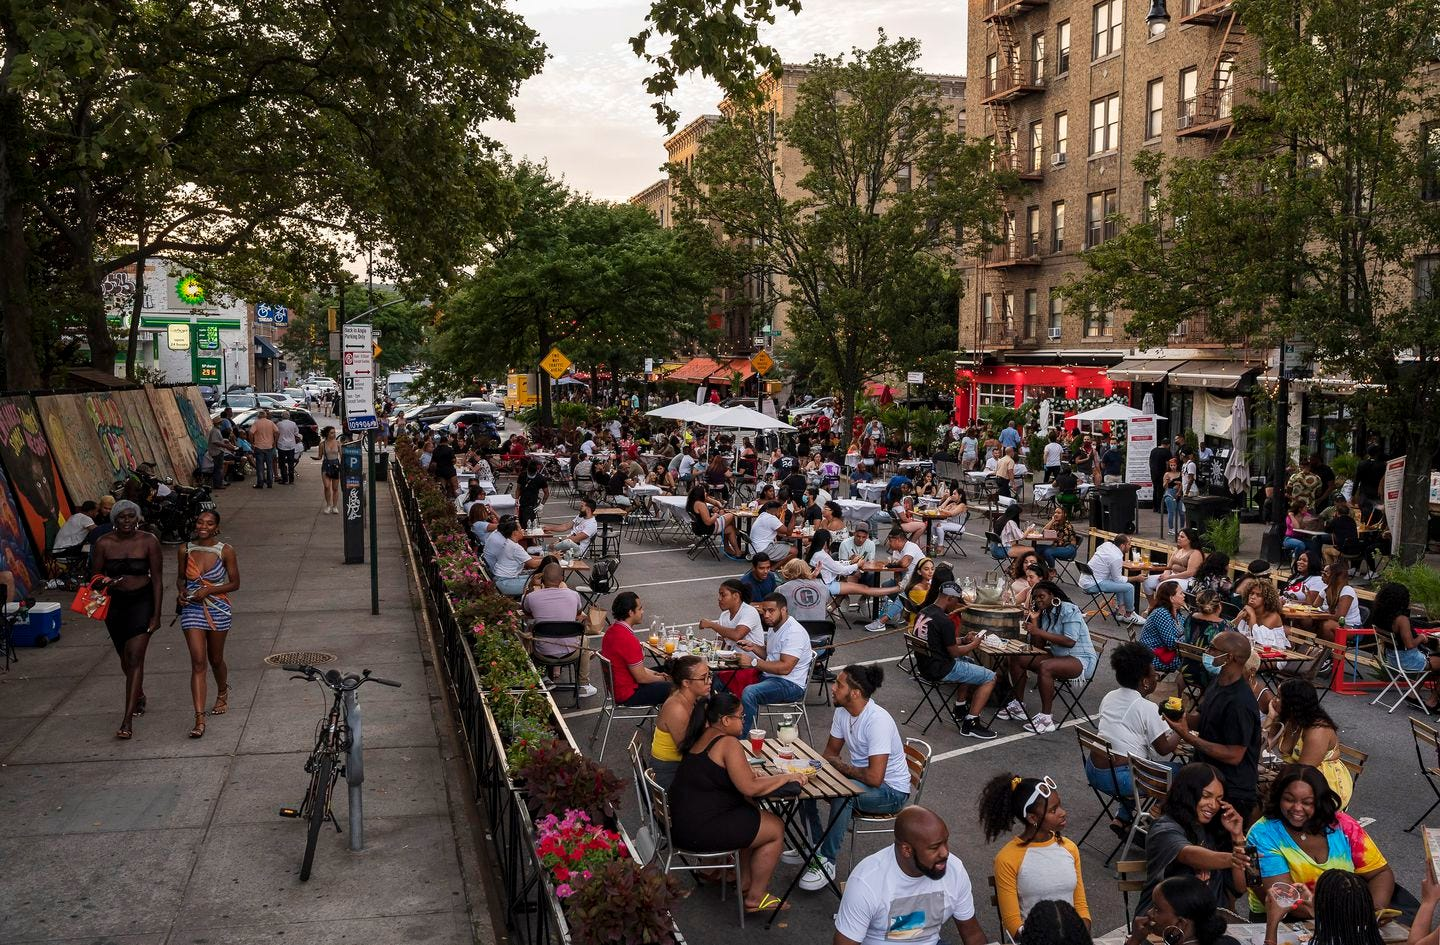 Restaurants have taken over Dyckman Street in northern Manhattan, which has been temporarily closed to cars during the coronavirus pandemic.